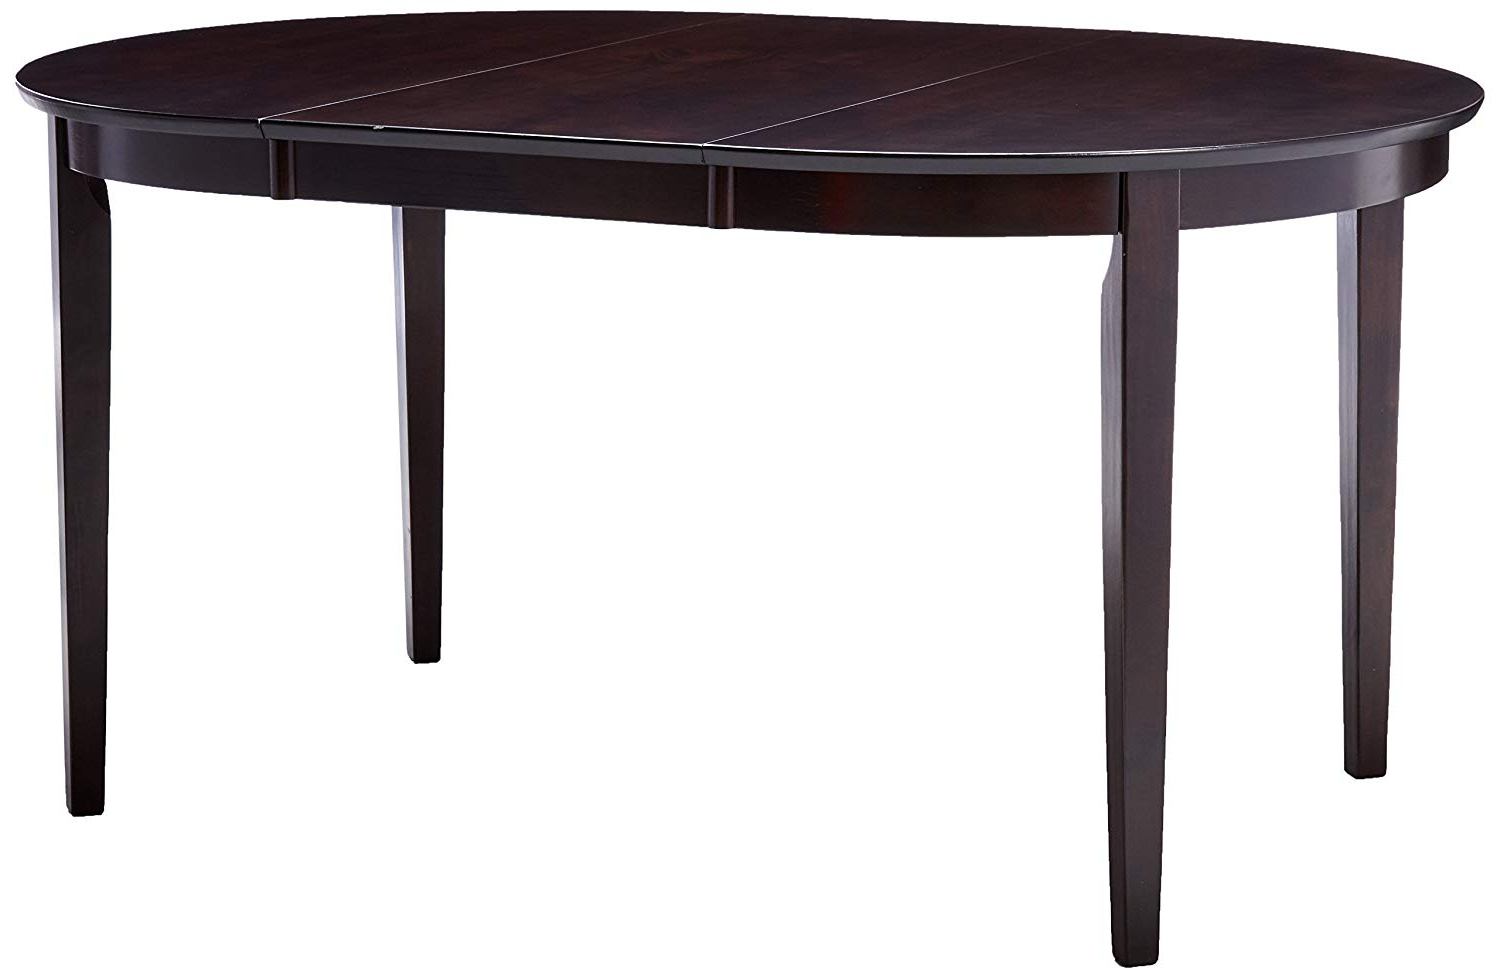 Cappuccino Finish Wood Classic Casual Dining Tables With Regard To Favorite Coaster 100770 Oval Dining Table With Extension Leaf Cappuccino Finish (View 8 of 25)